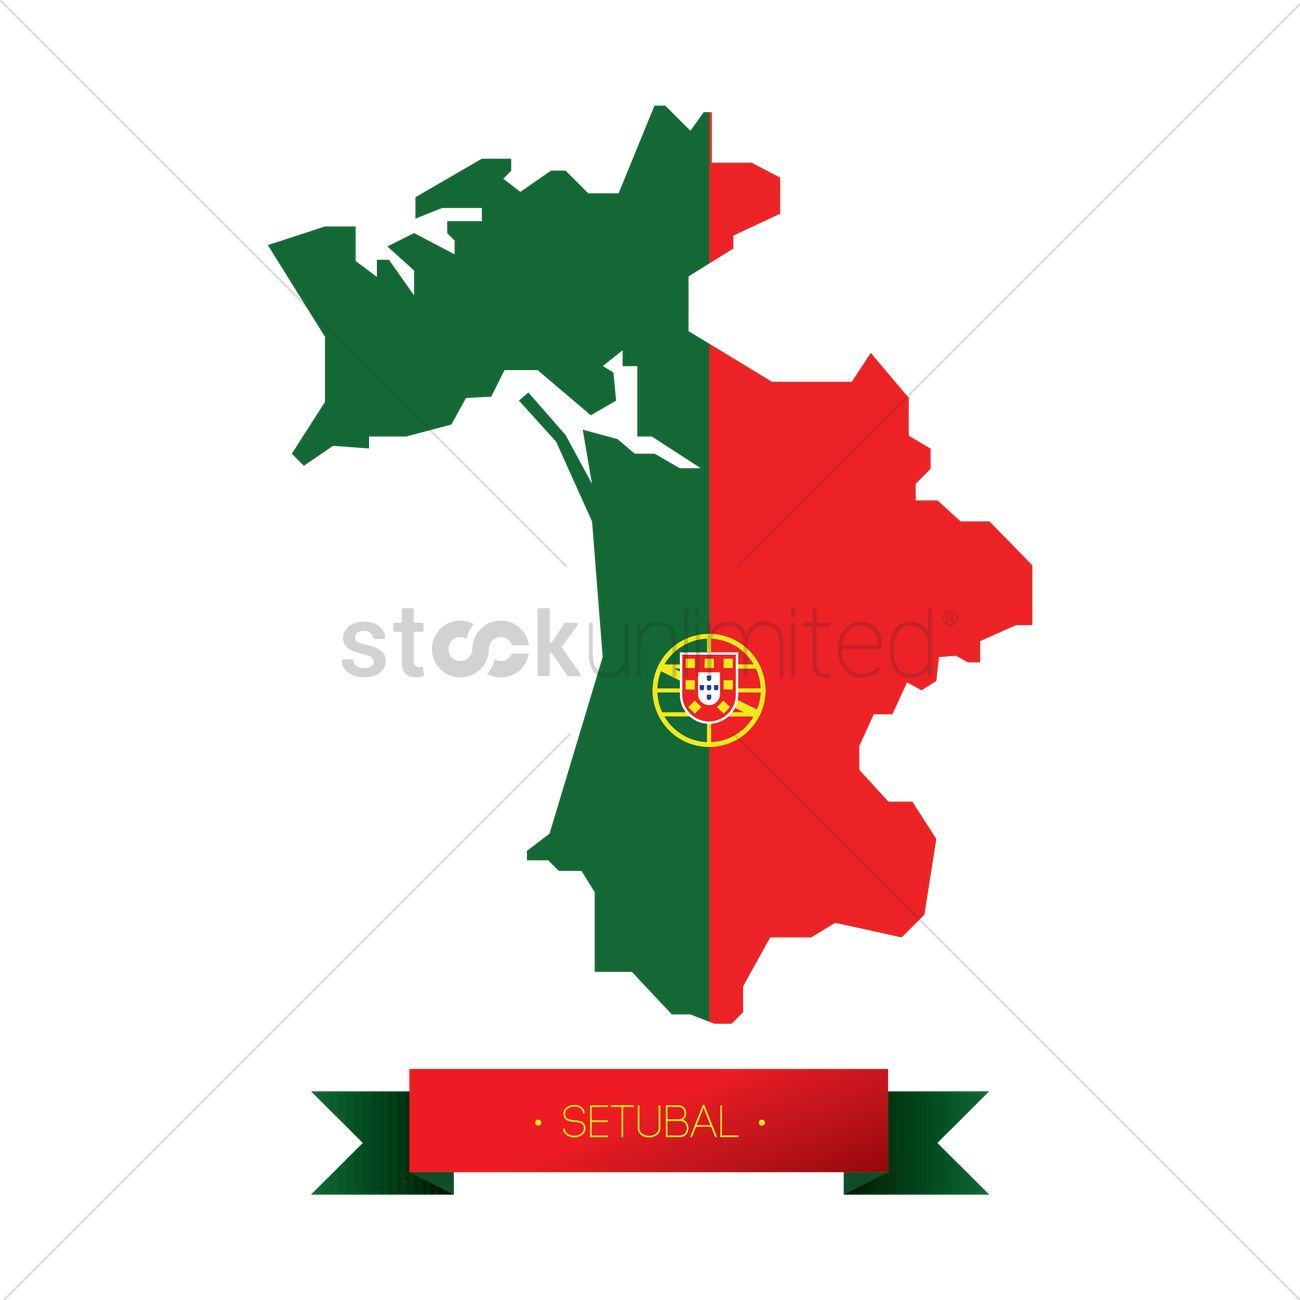 Setubal map Vector Image 1582383 StockUnlimited